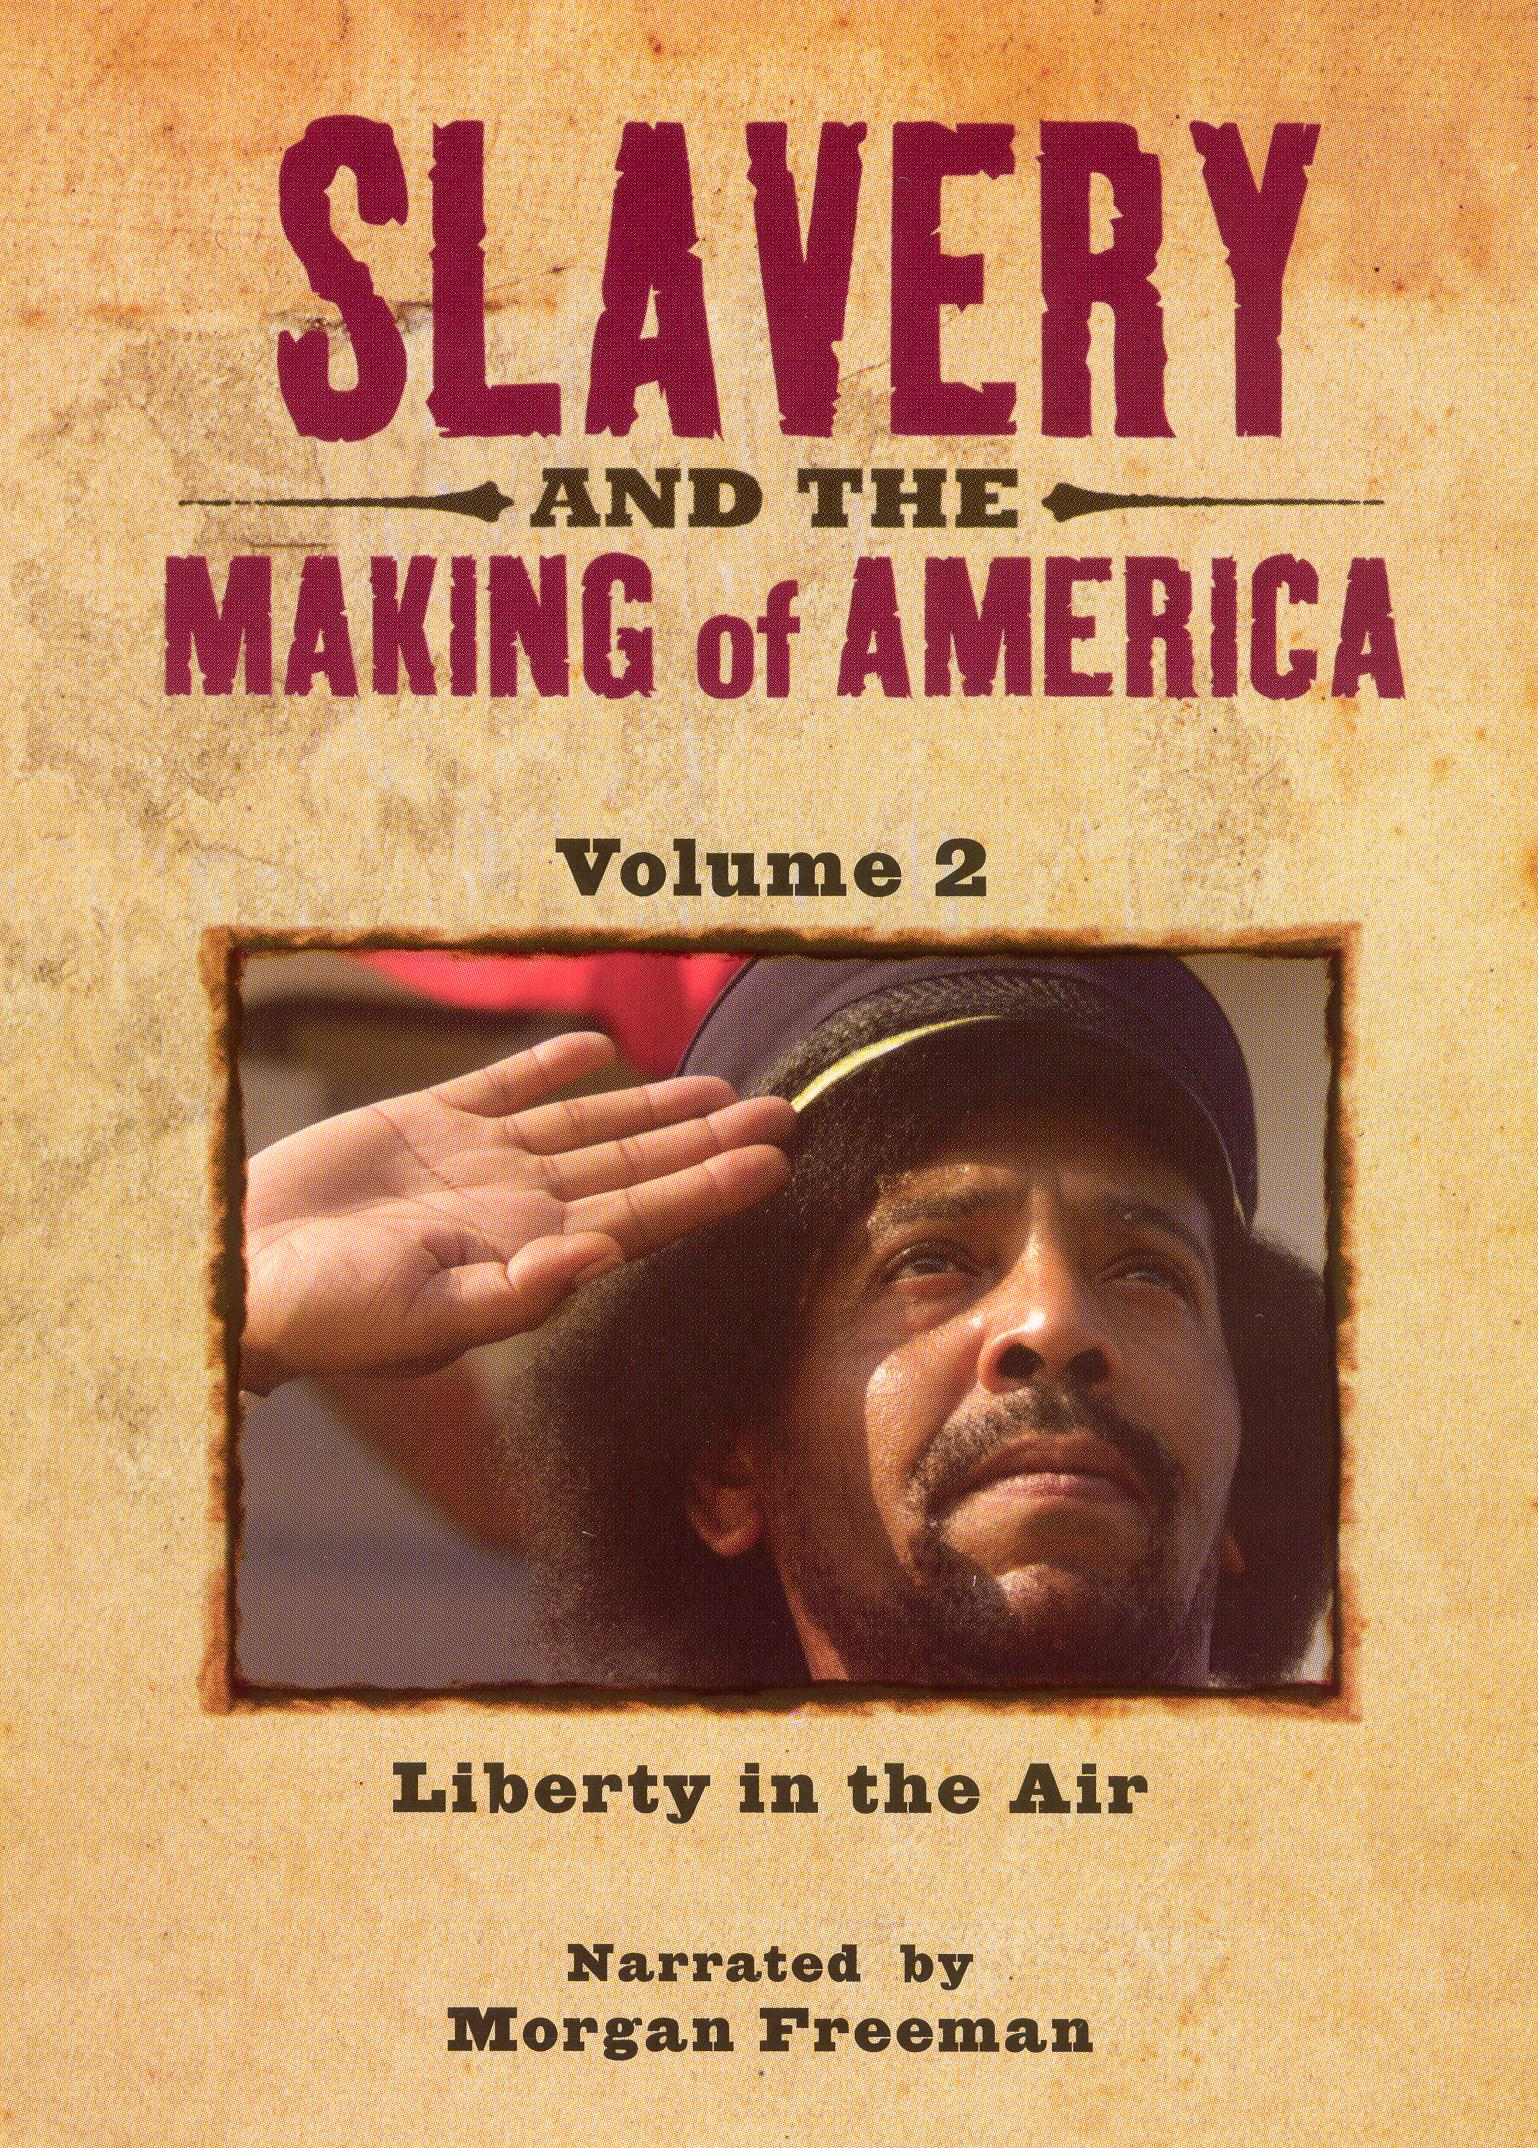 Slavery and the Making of America, Episode 2: Liberty in the Air